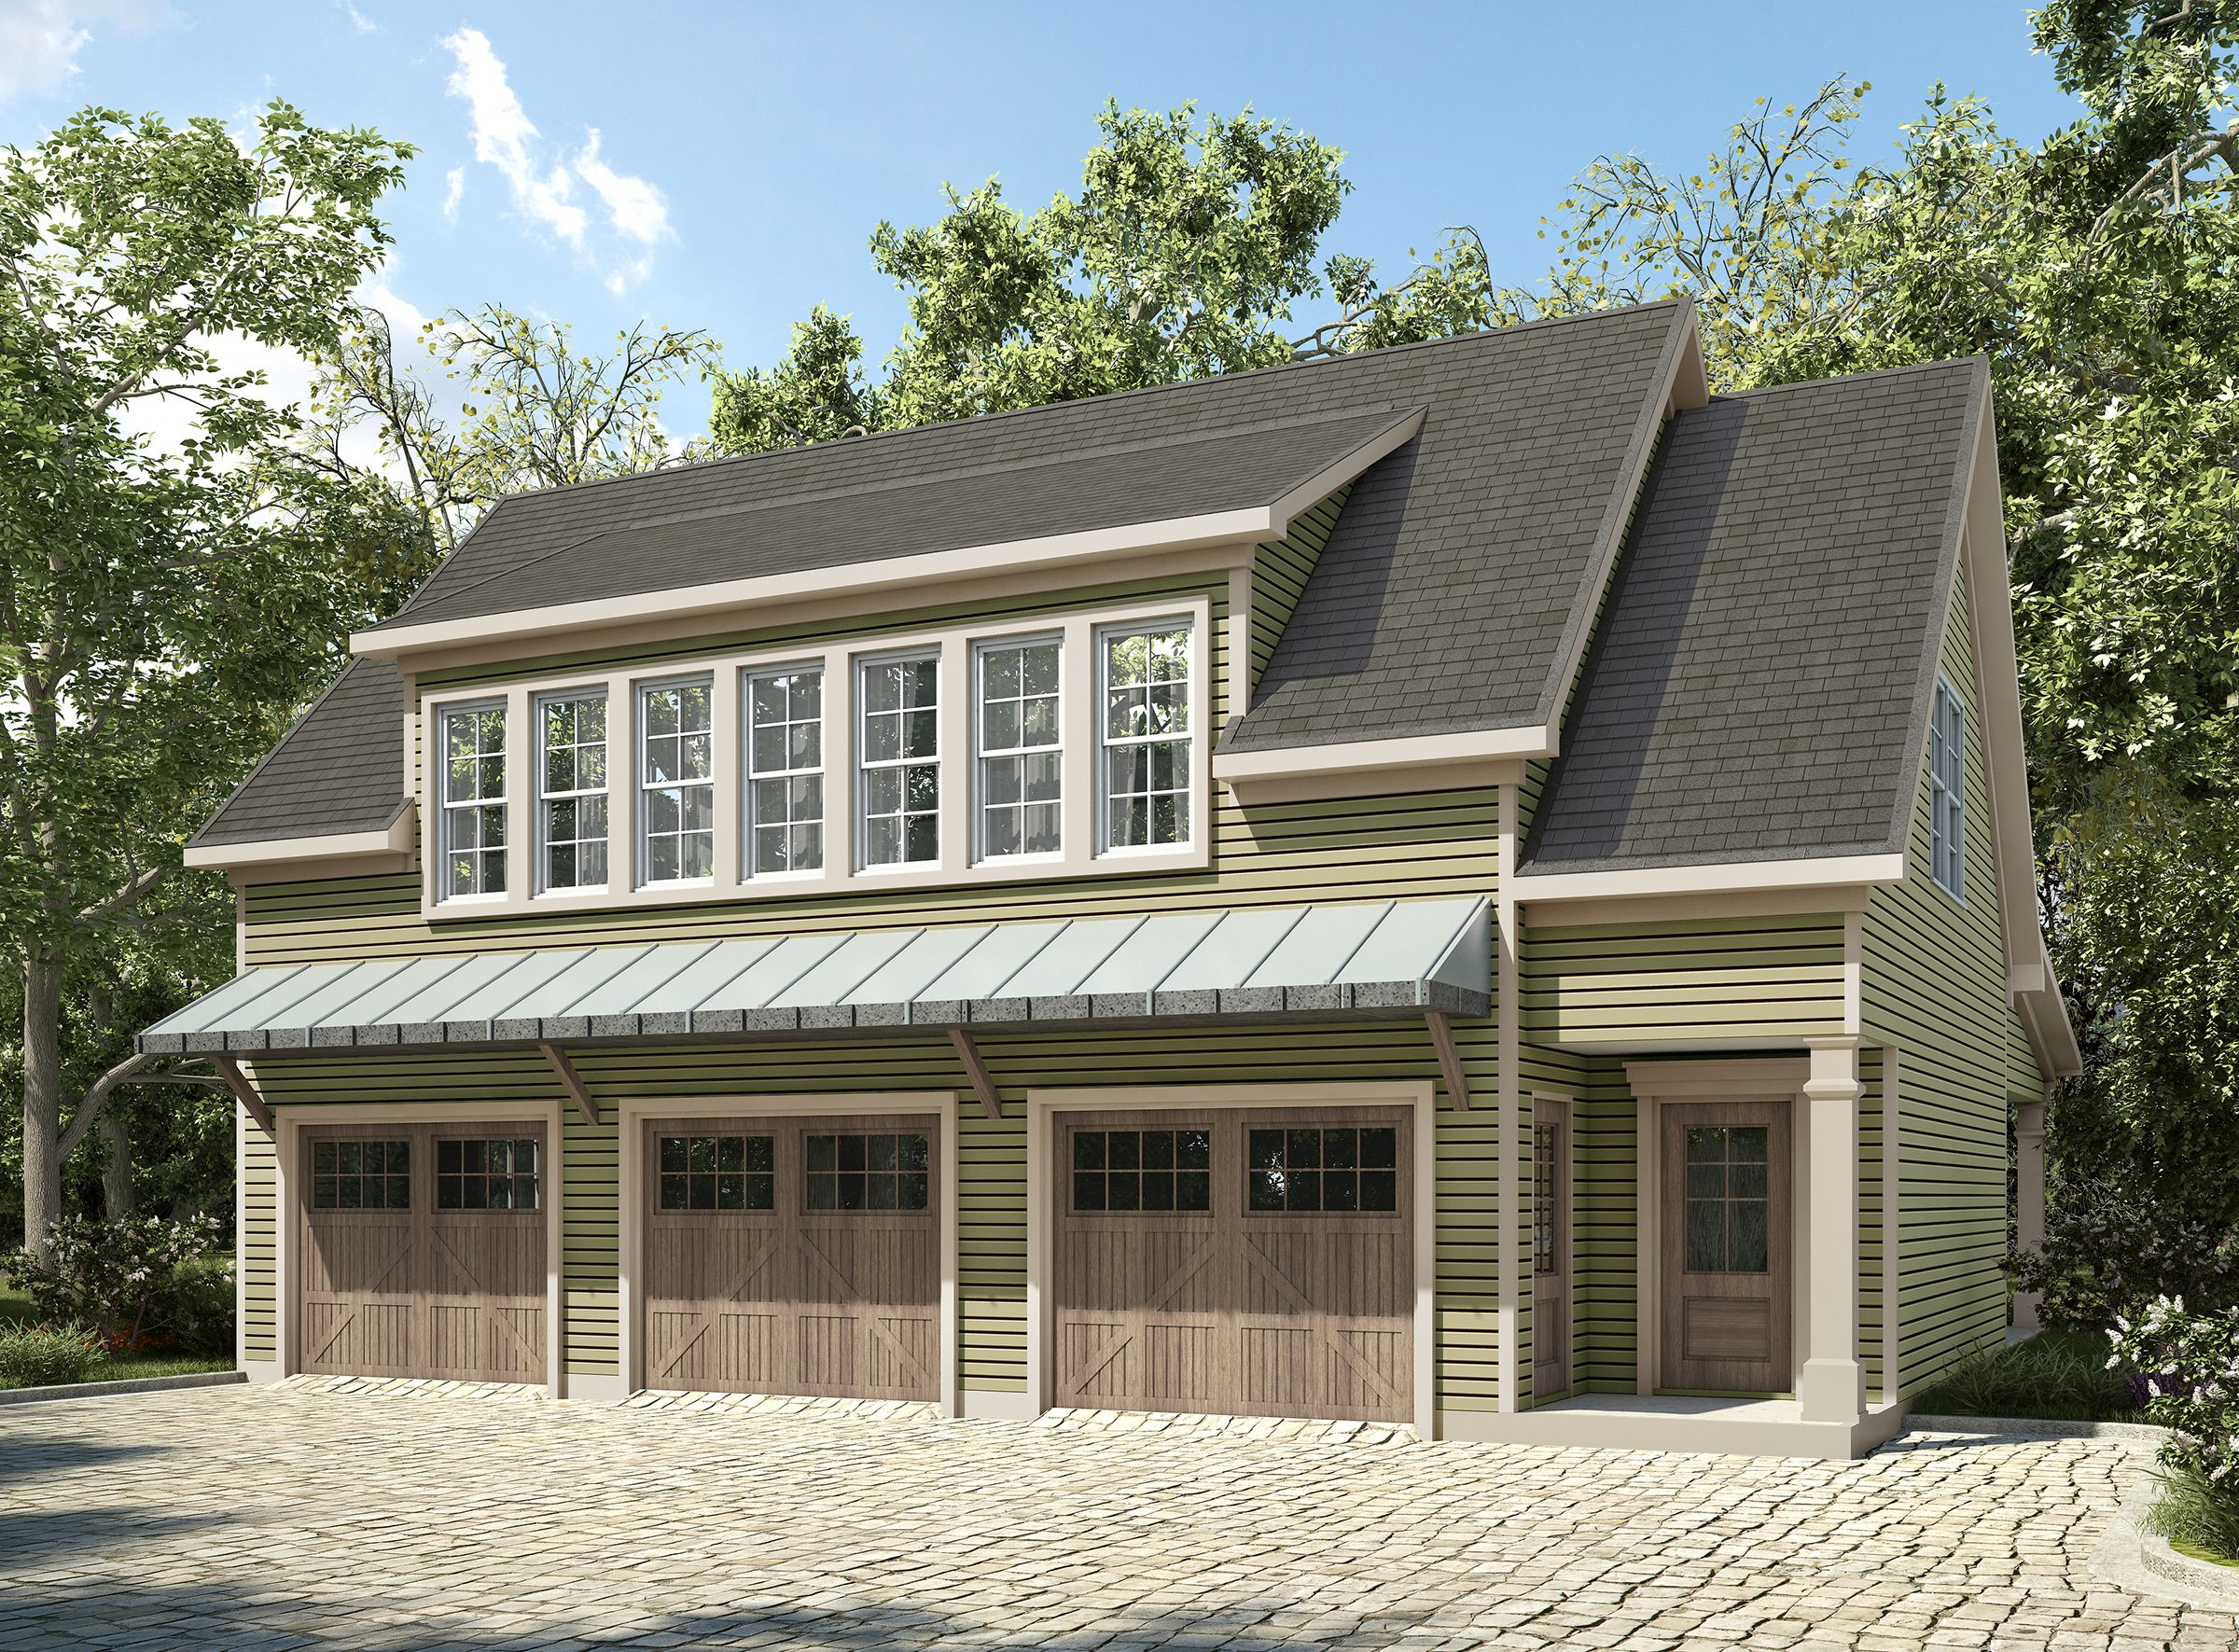 Plan 36057dk 3 bay carriage house plan with shed roof in for 3 car garage house plans